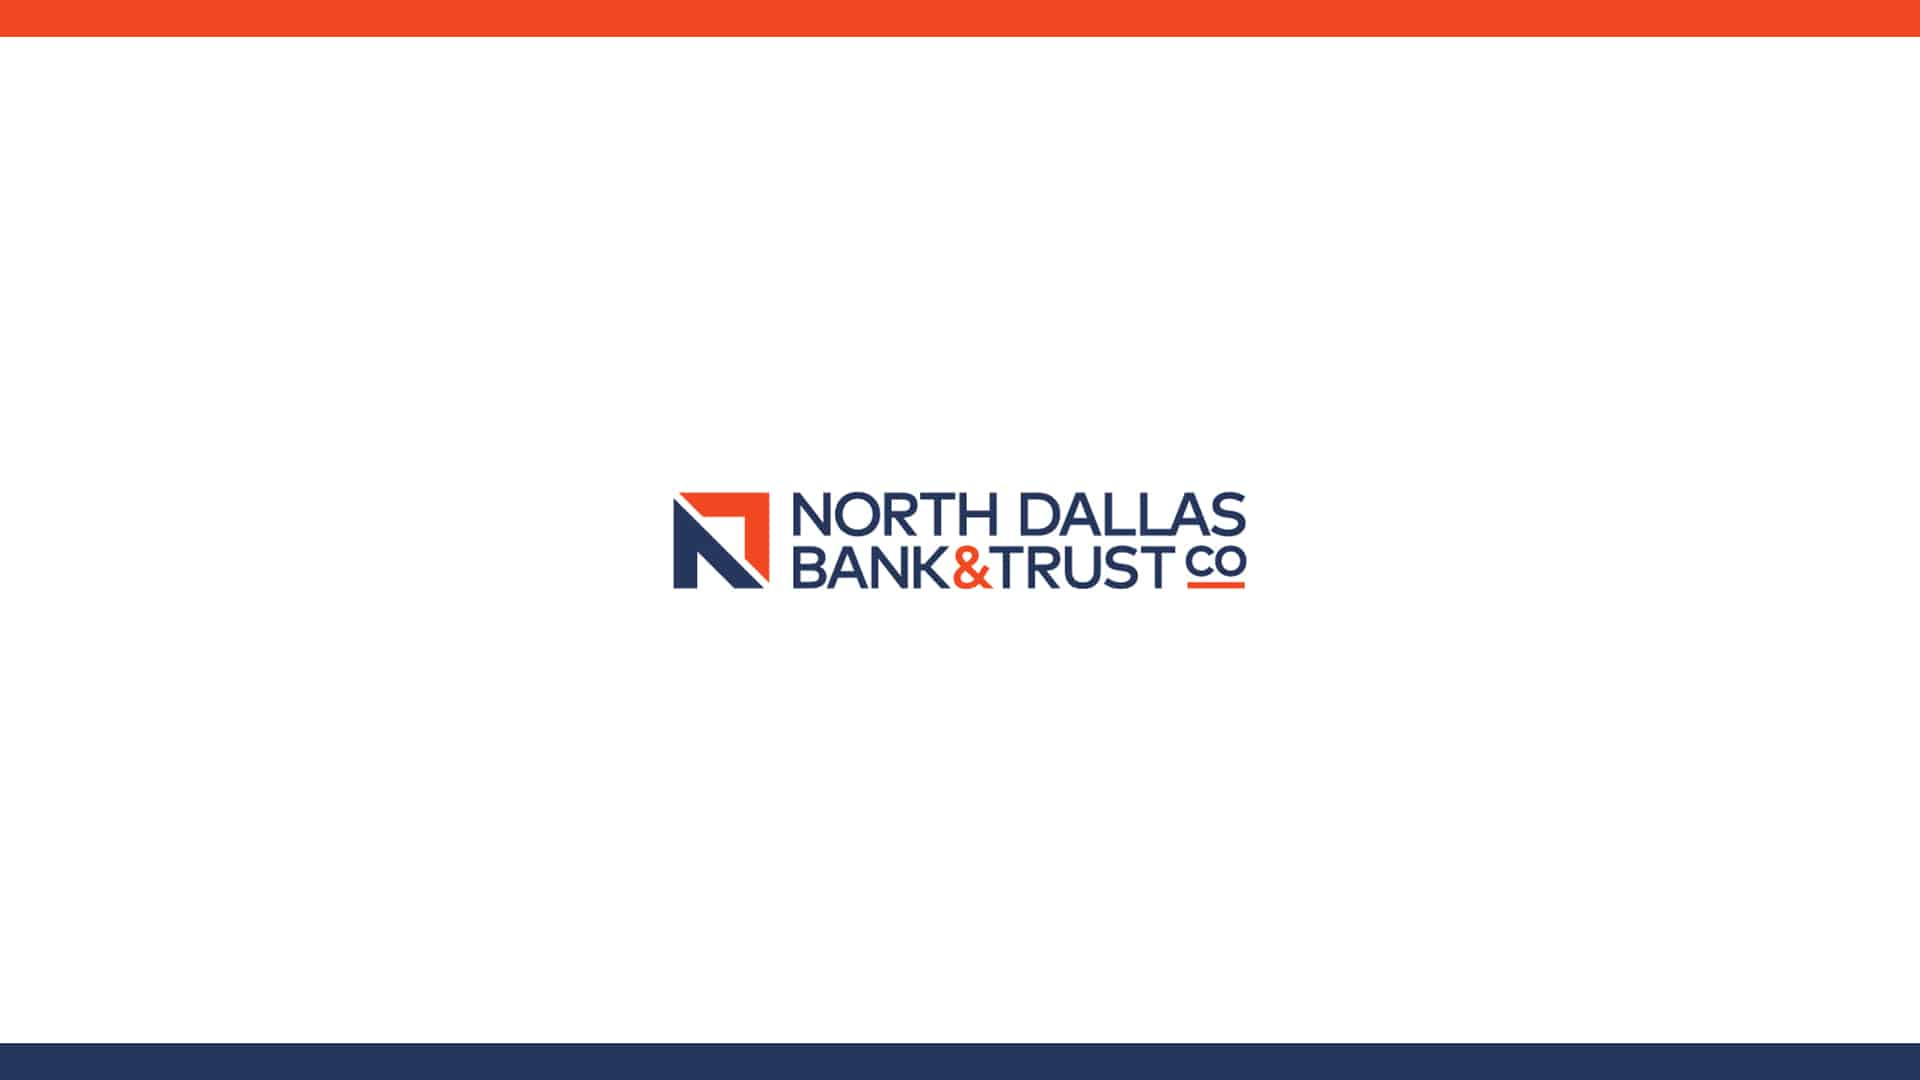 North Dallas Bank & Trust